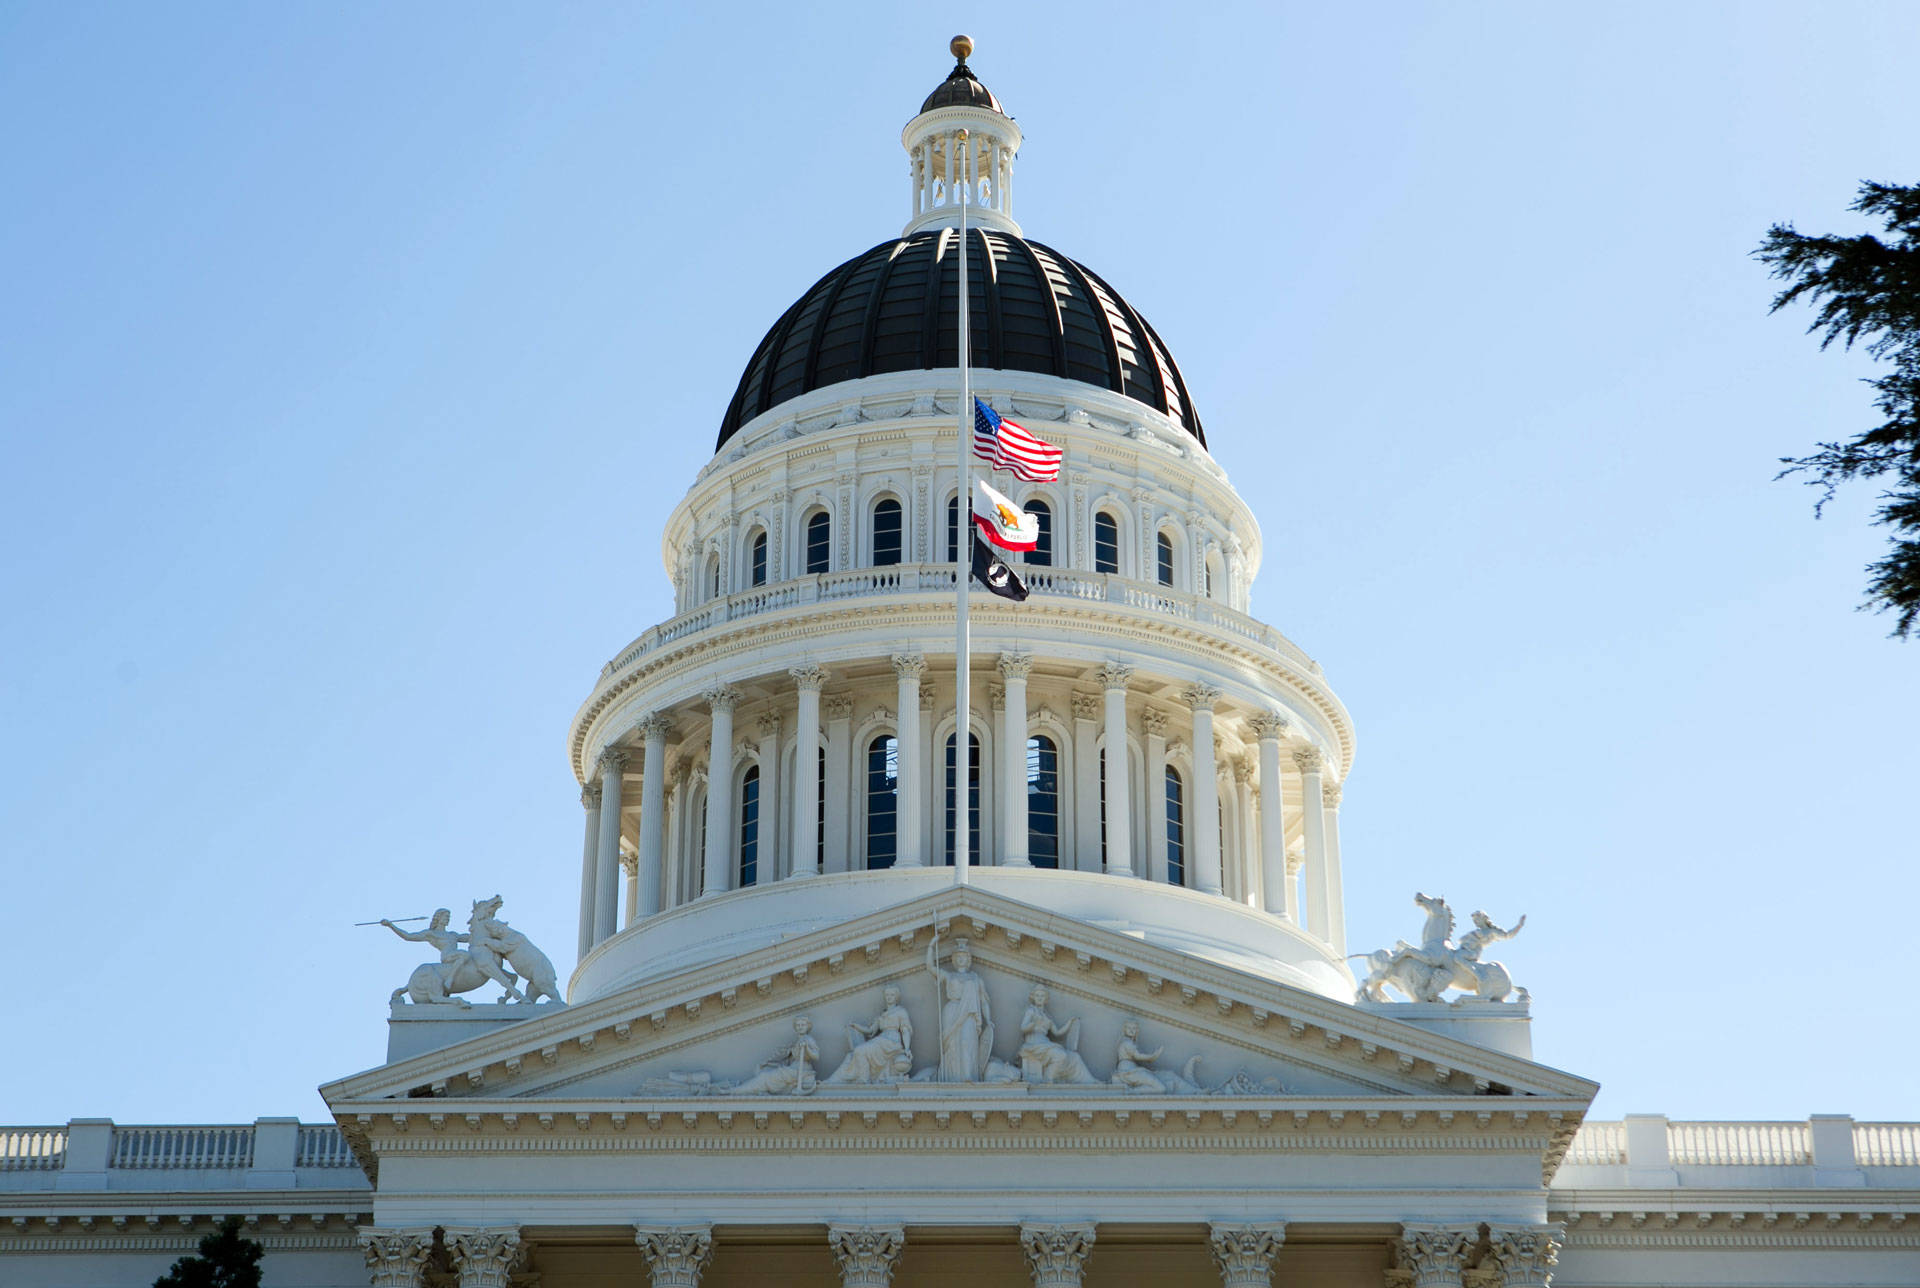 California's Capitol has been dealing with fallout from sexual harassment allegations since last fall when more than 140 women signed onto an open lettercondemning an atmosphere of sexual harassment in the Capitol community.